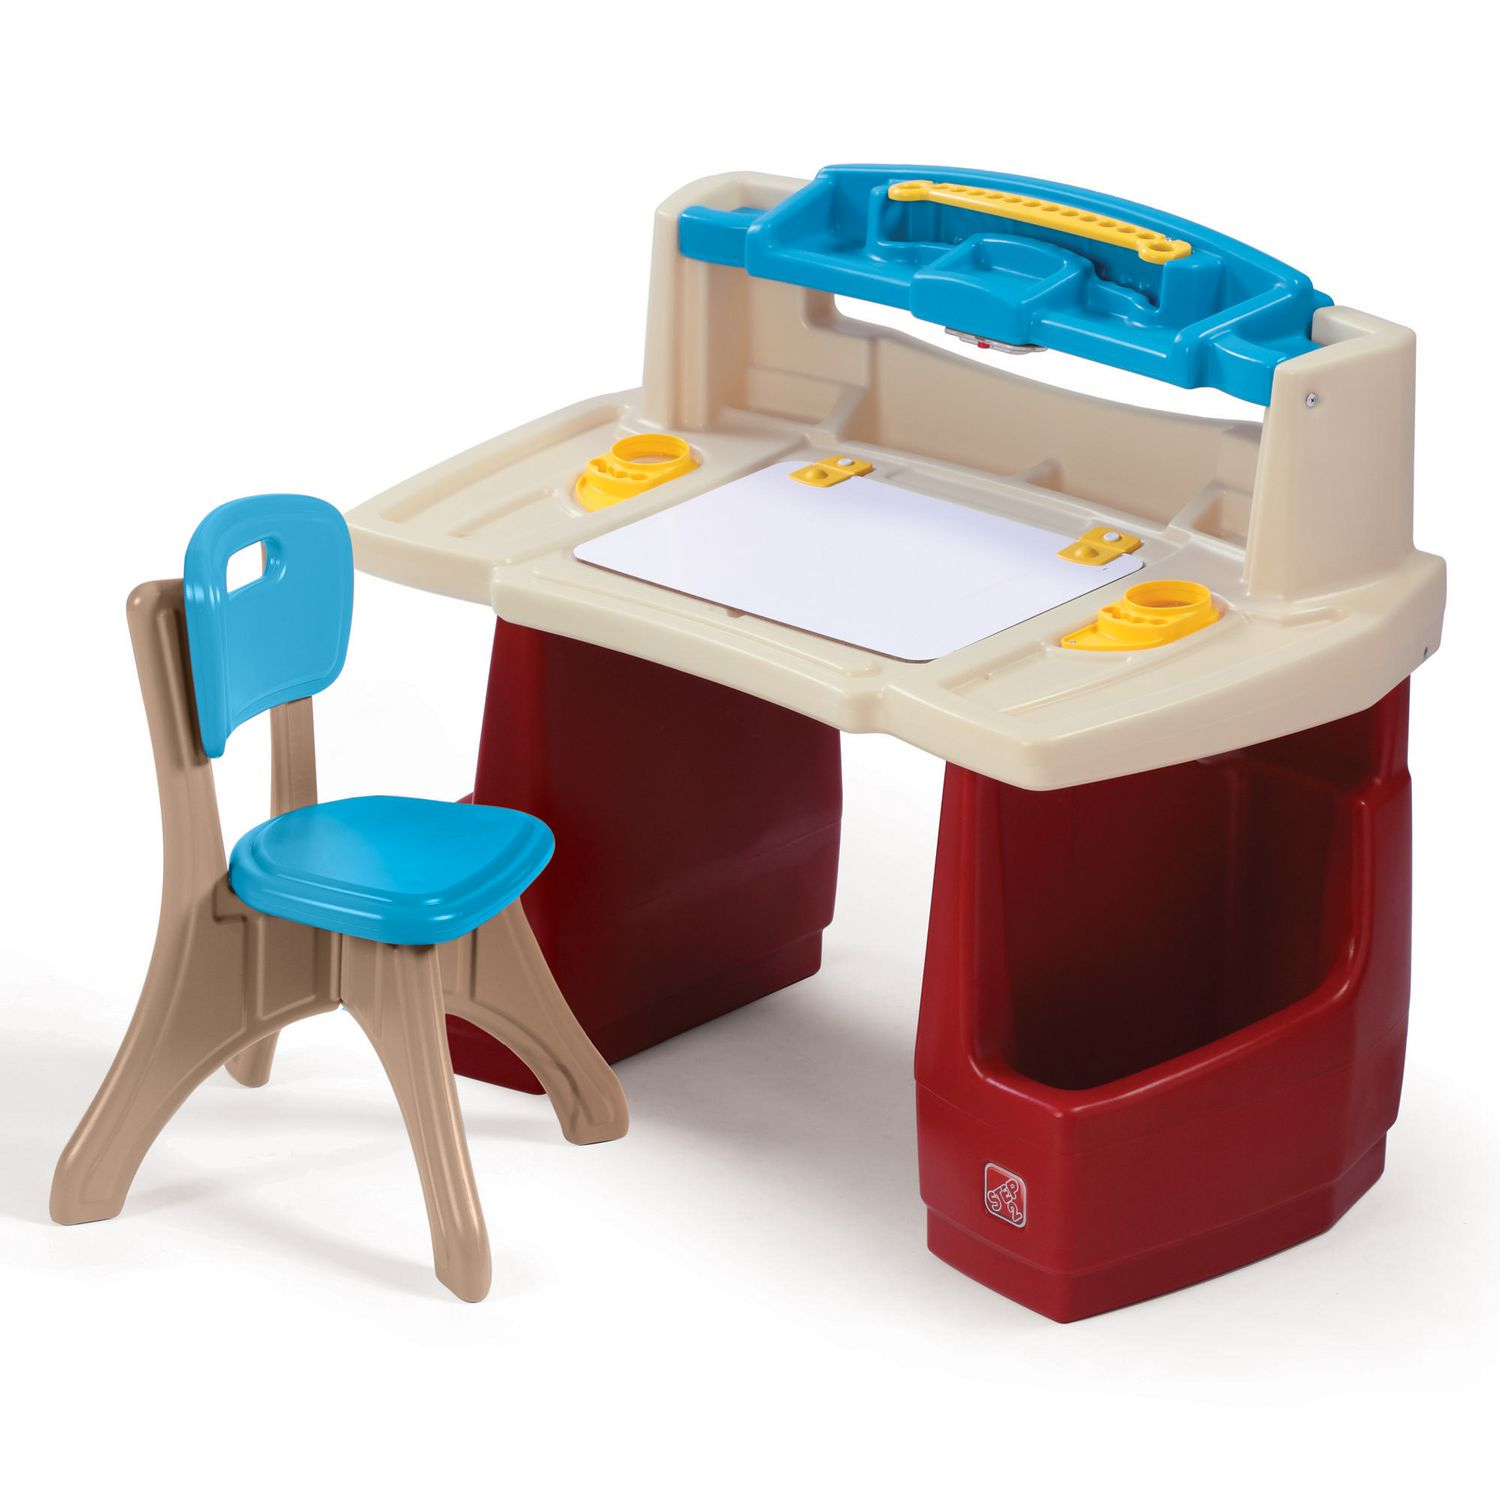 Step2 Deluxe Art Master Desk comes with a Comfortable New Traditions